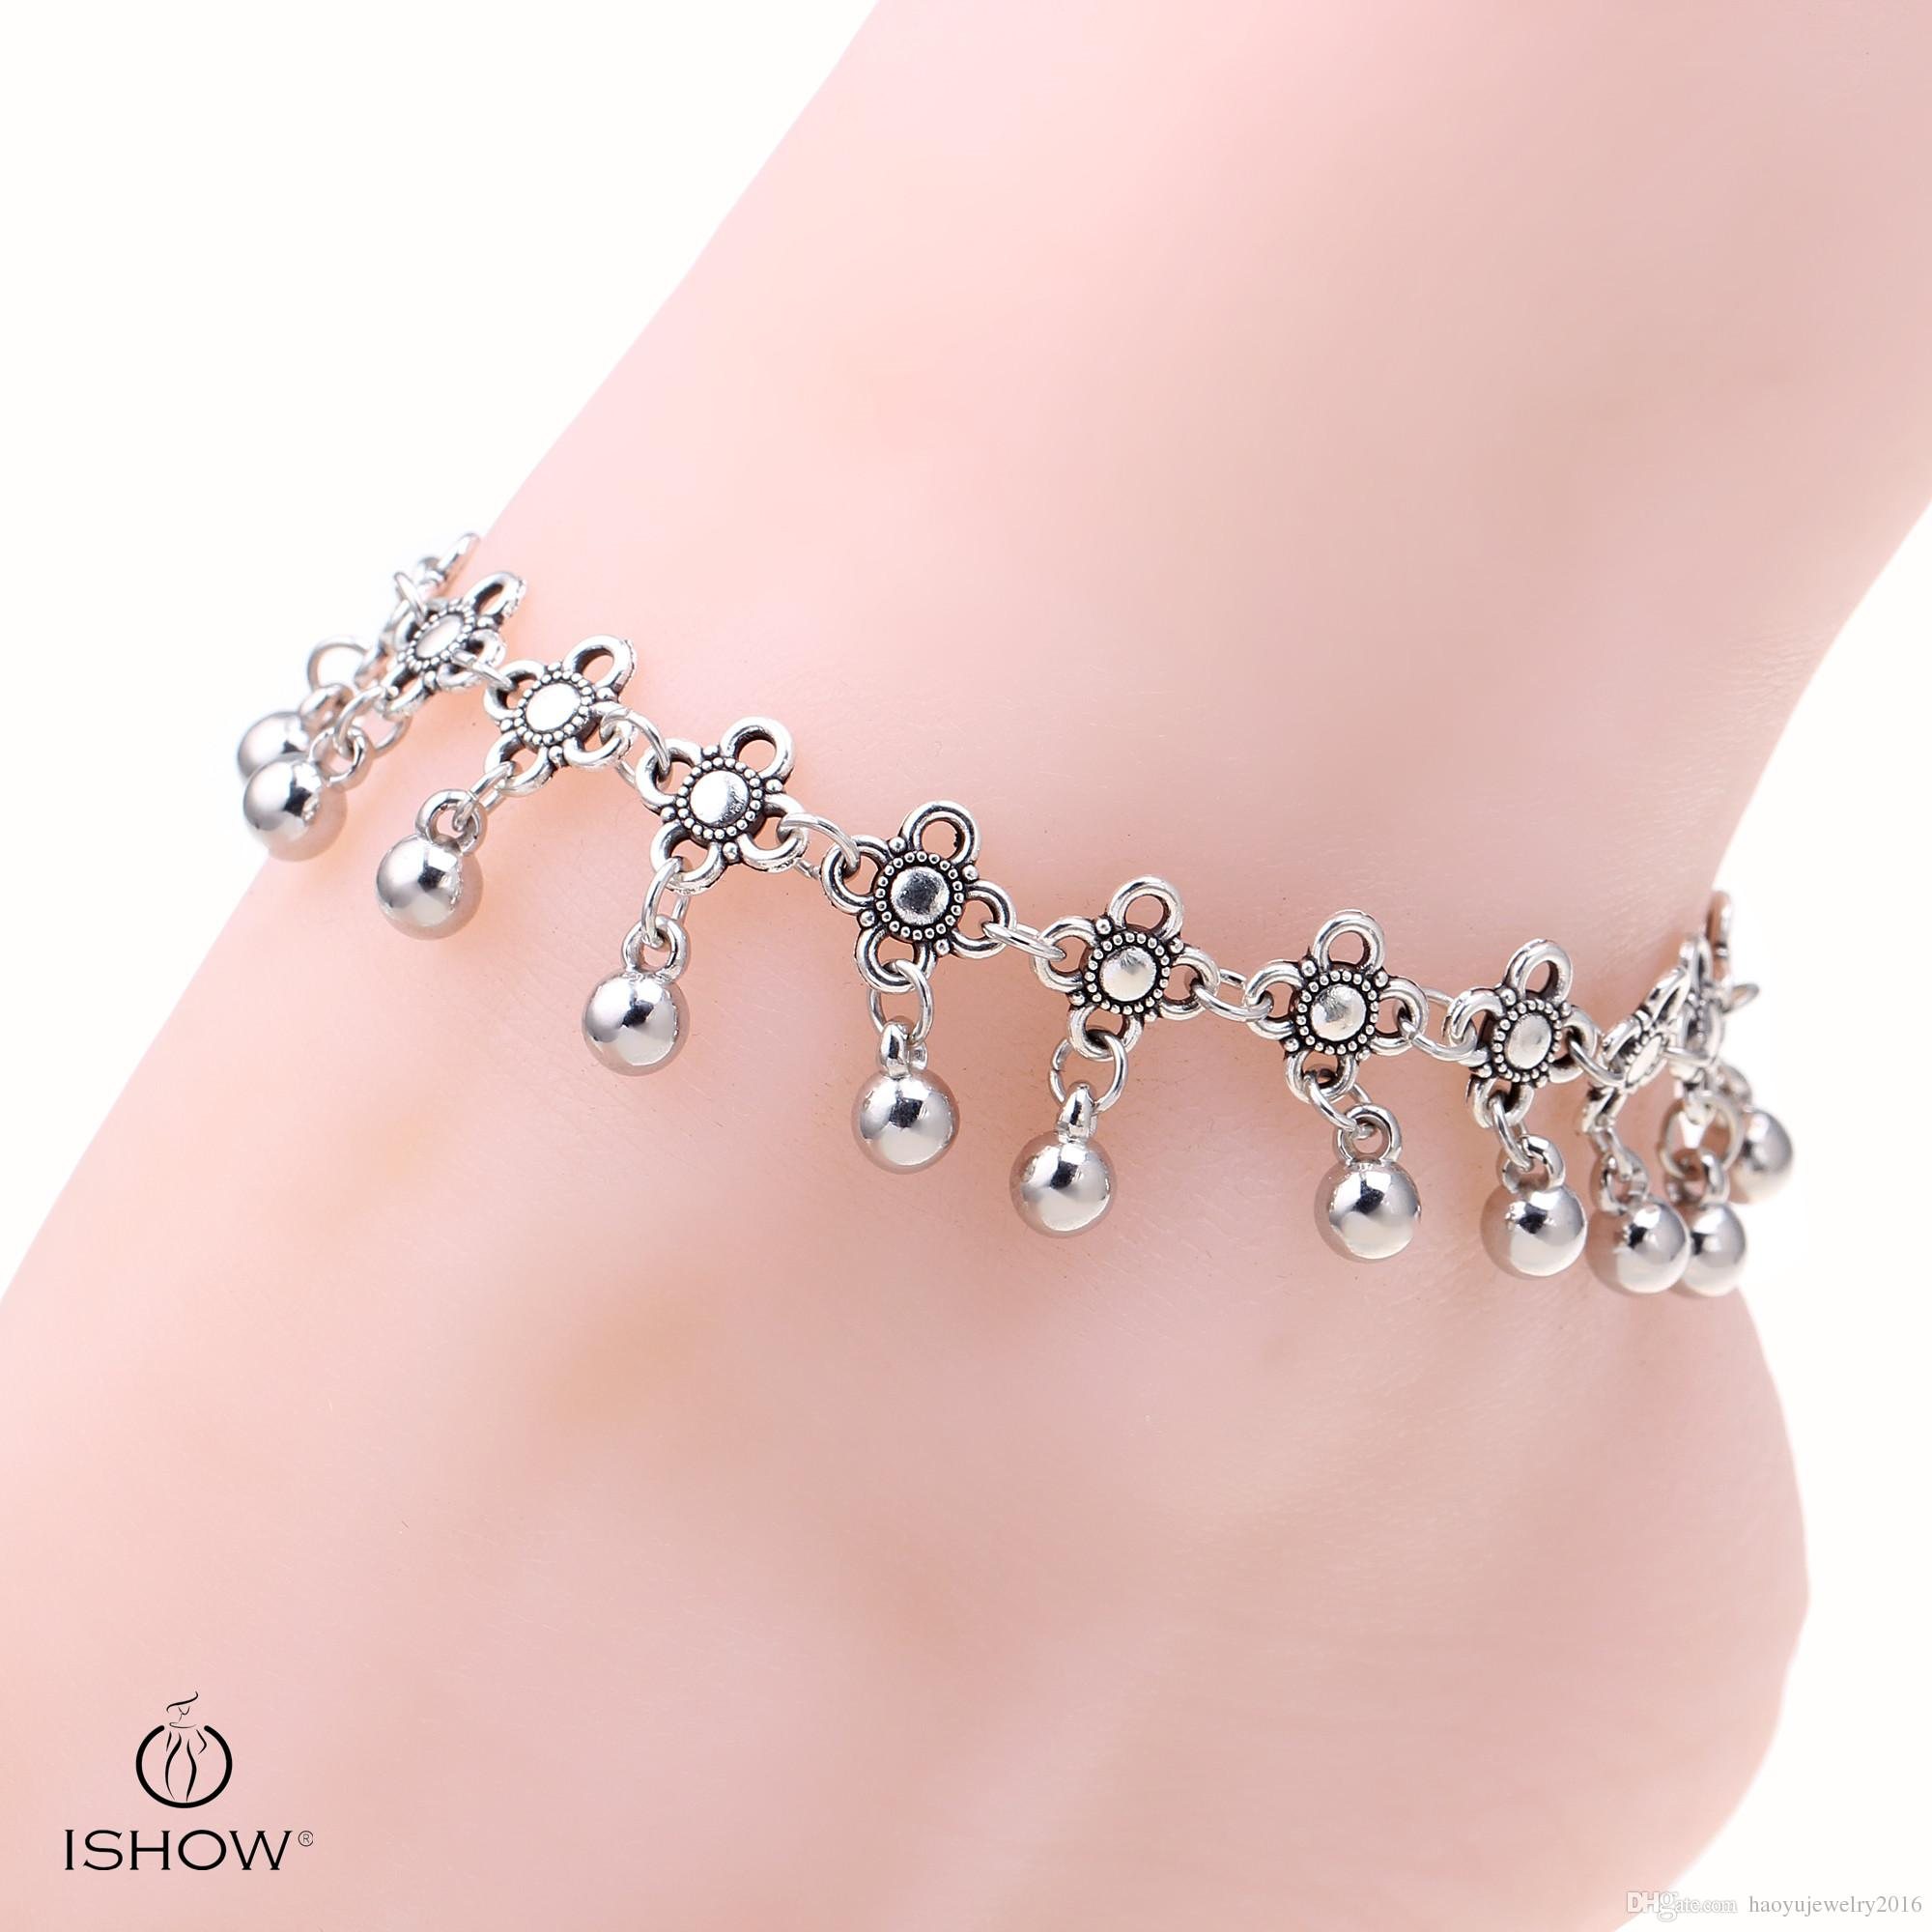 silver plated clasp ringing with bracelet on chain charm toggle ankle anklet original product coin and popular bell bracelets